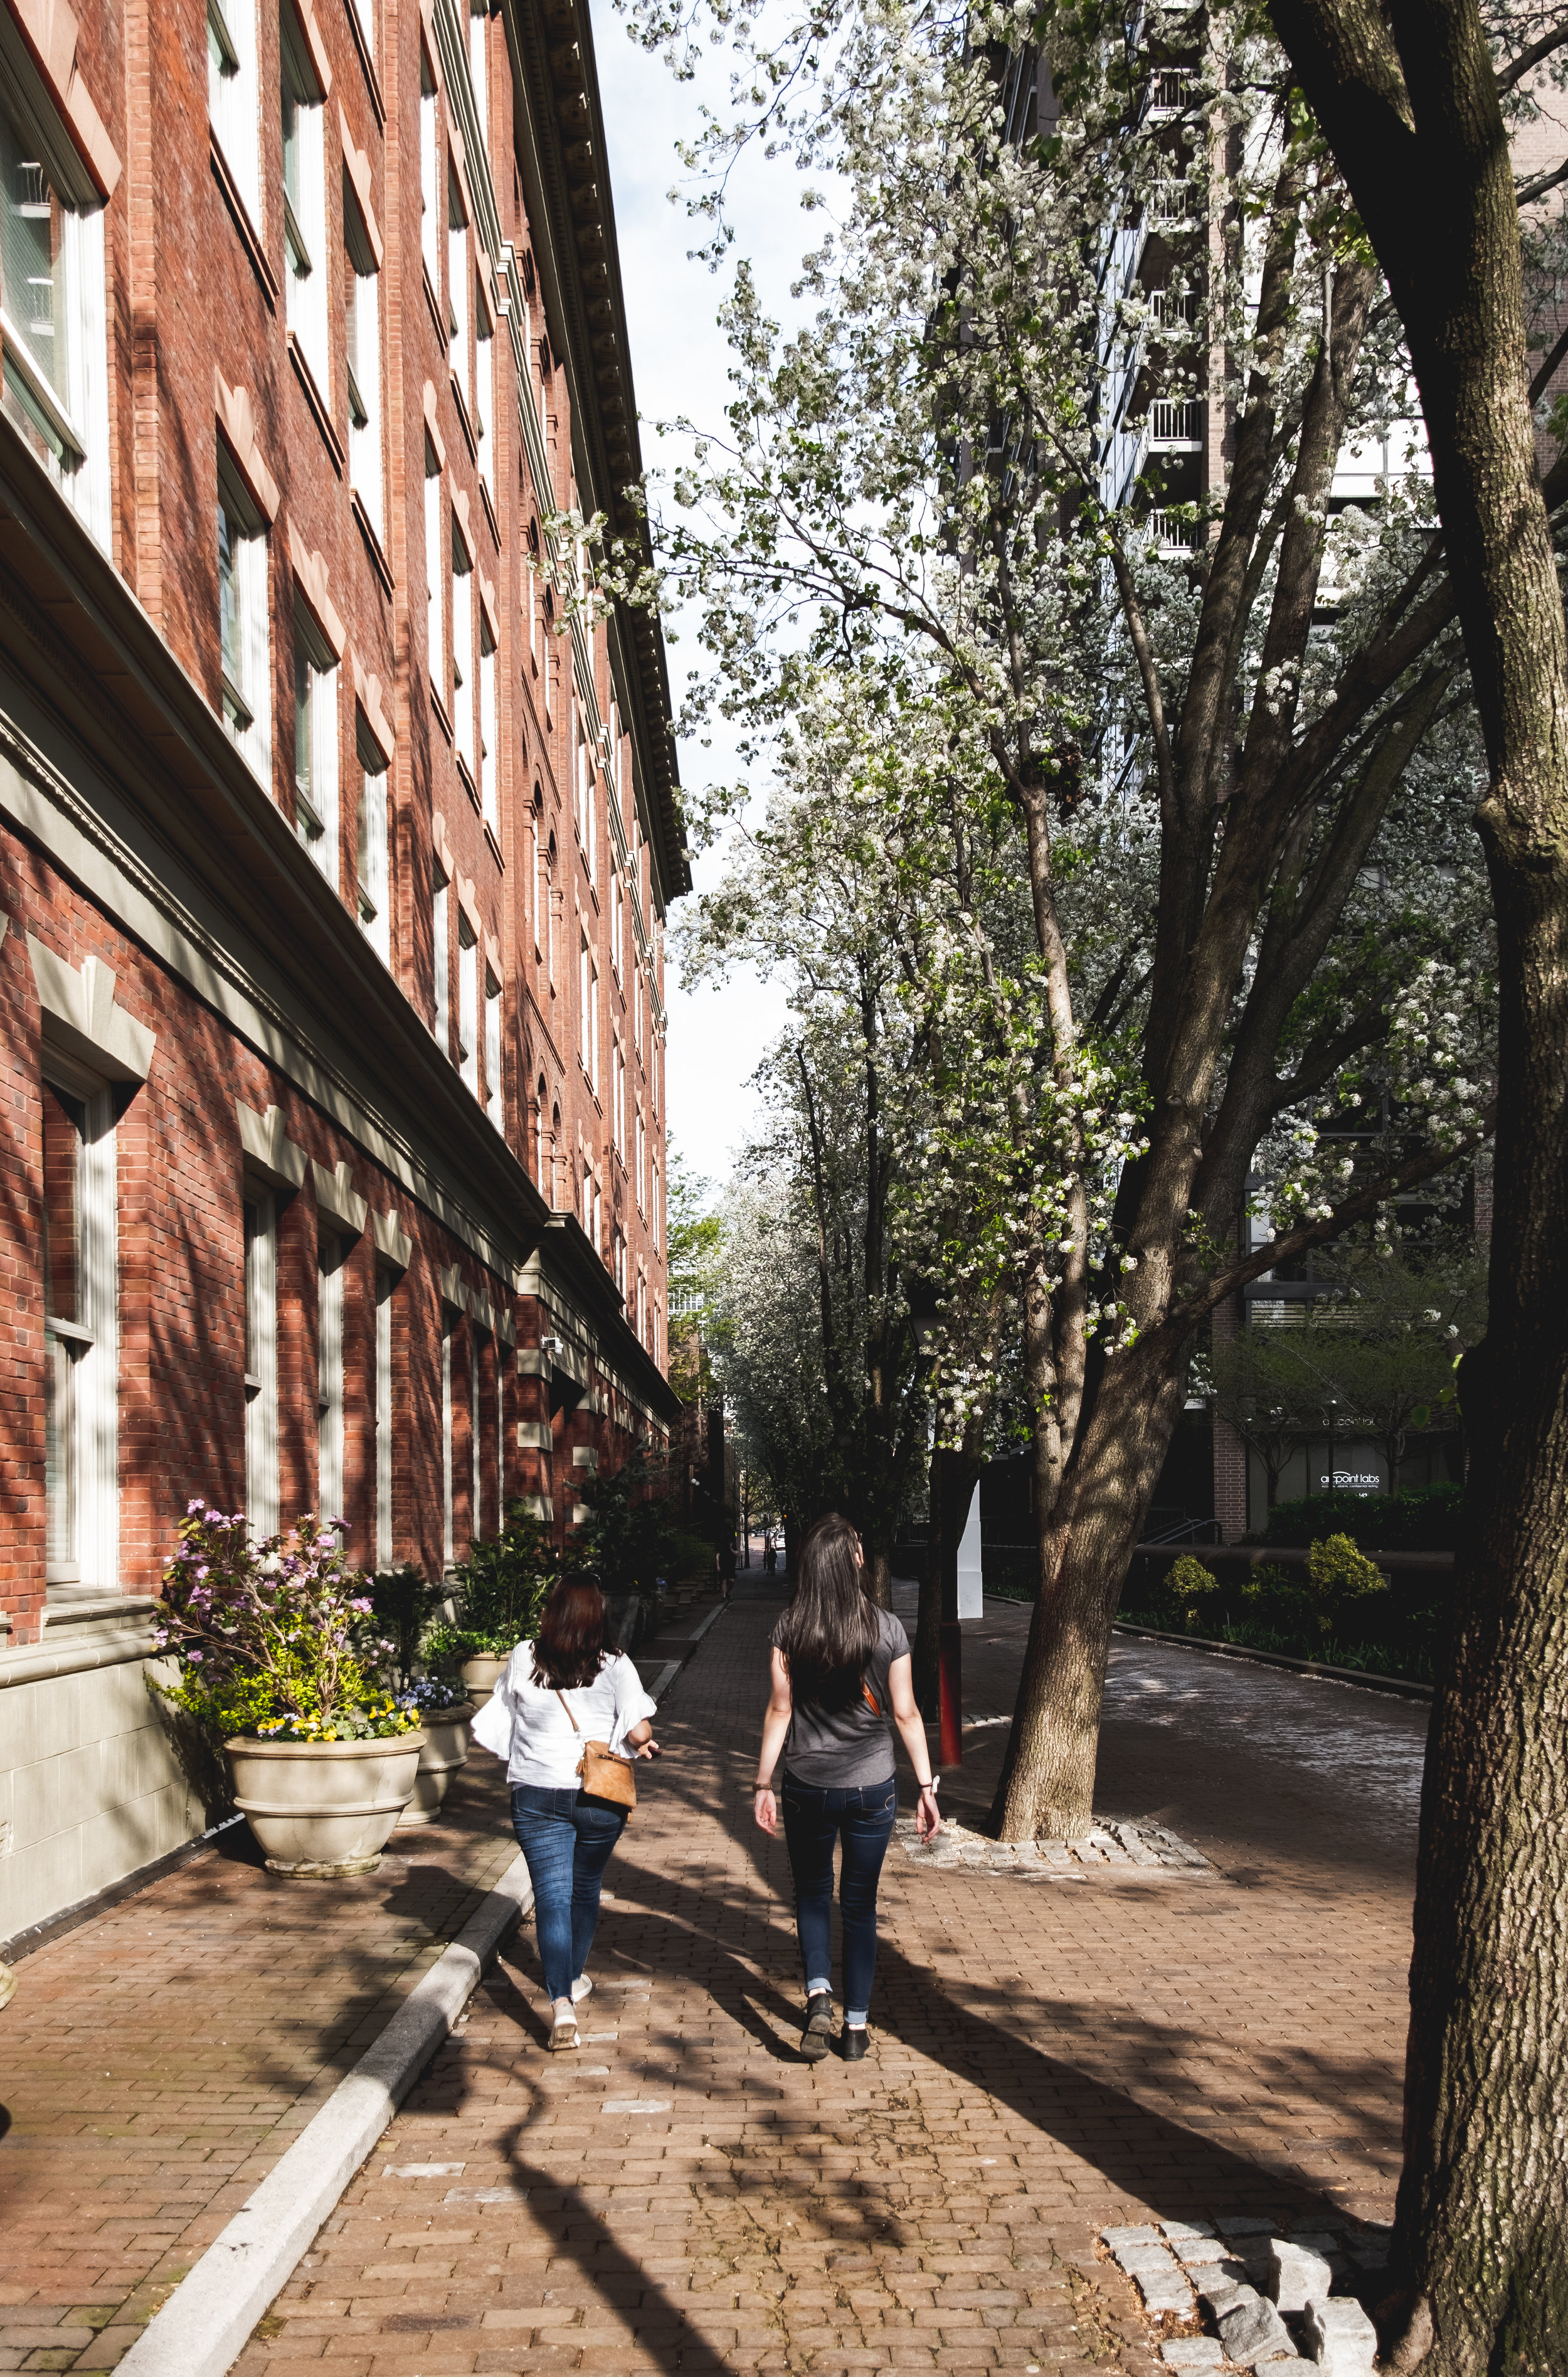 2019_TREES WALKWAY_THE PHILLY CHECKLIST-1.jpg